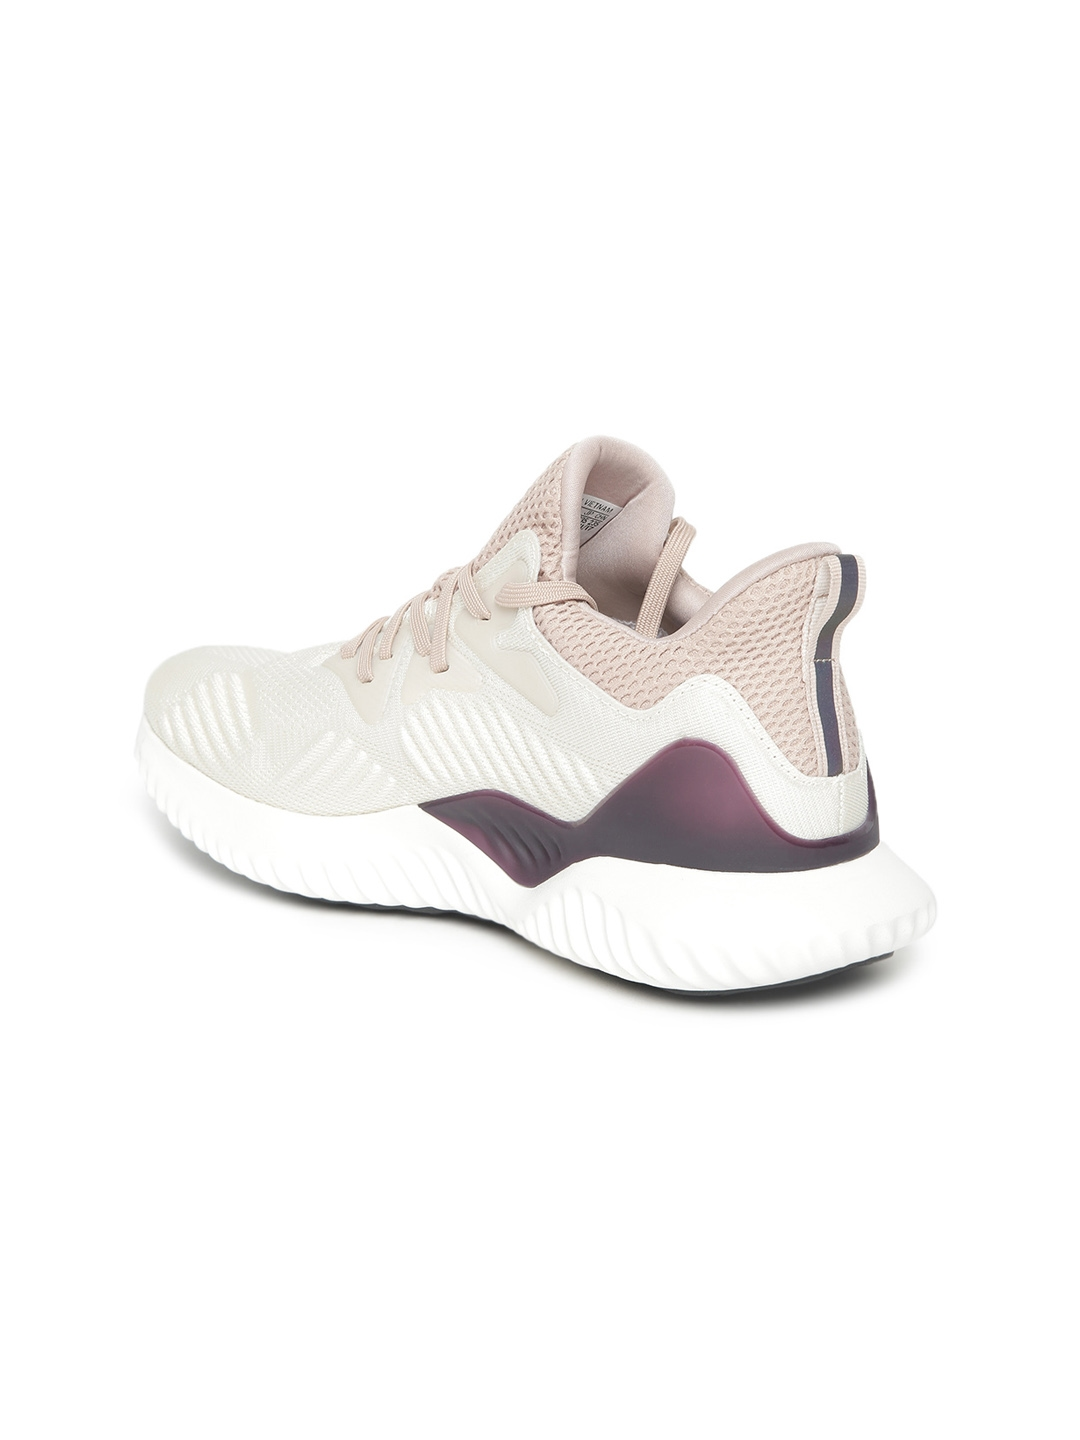 78f552123 Buy ADIDAS Women Beige   White ALPHABOUNCE BEYOND W Running Shoes ...